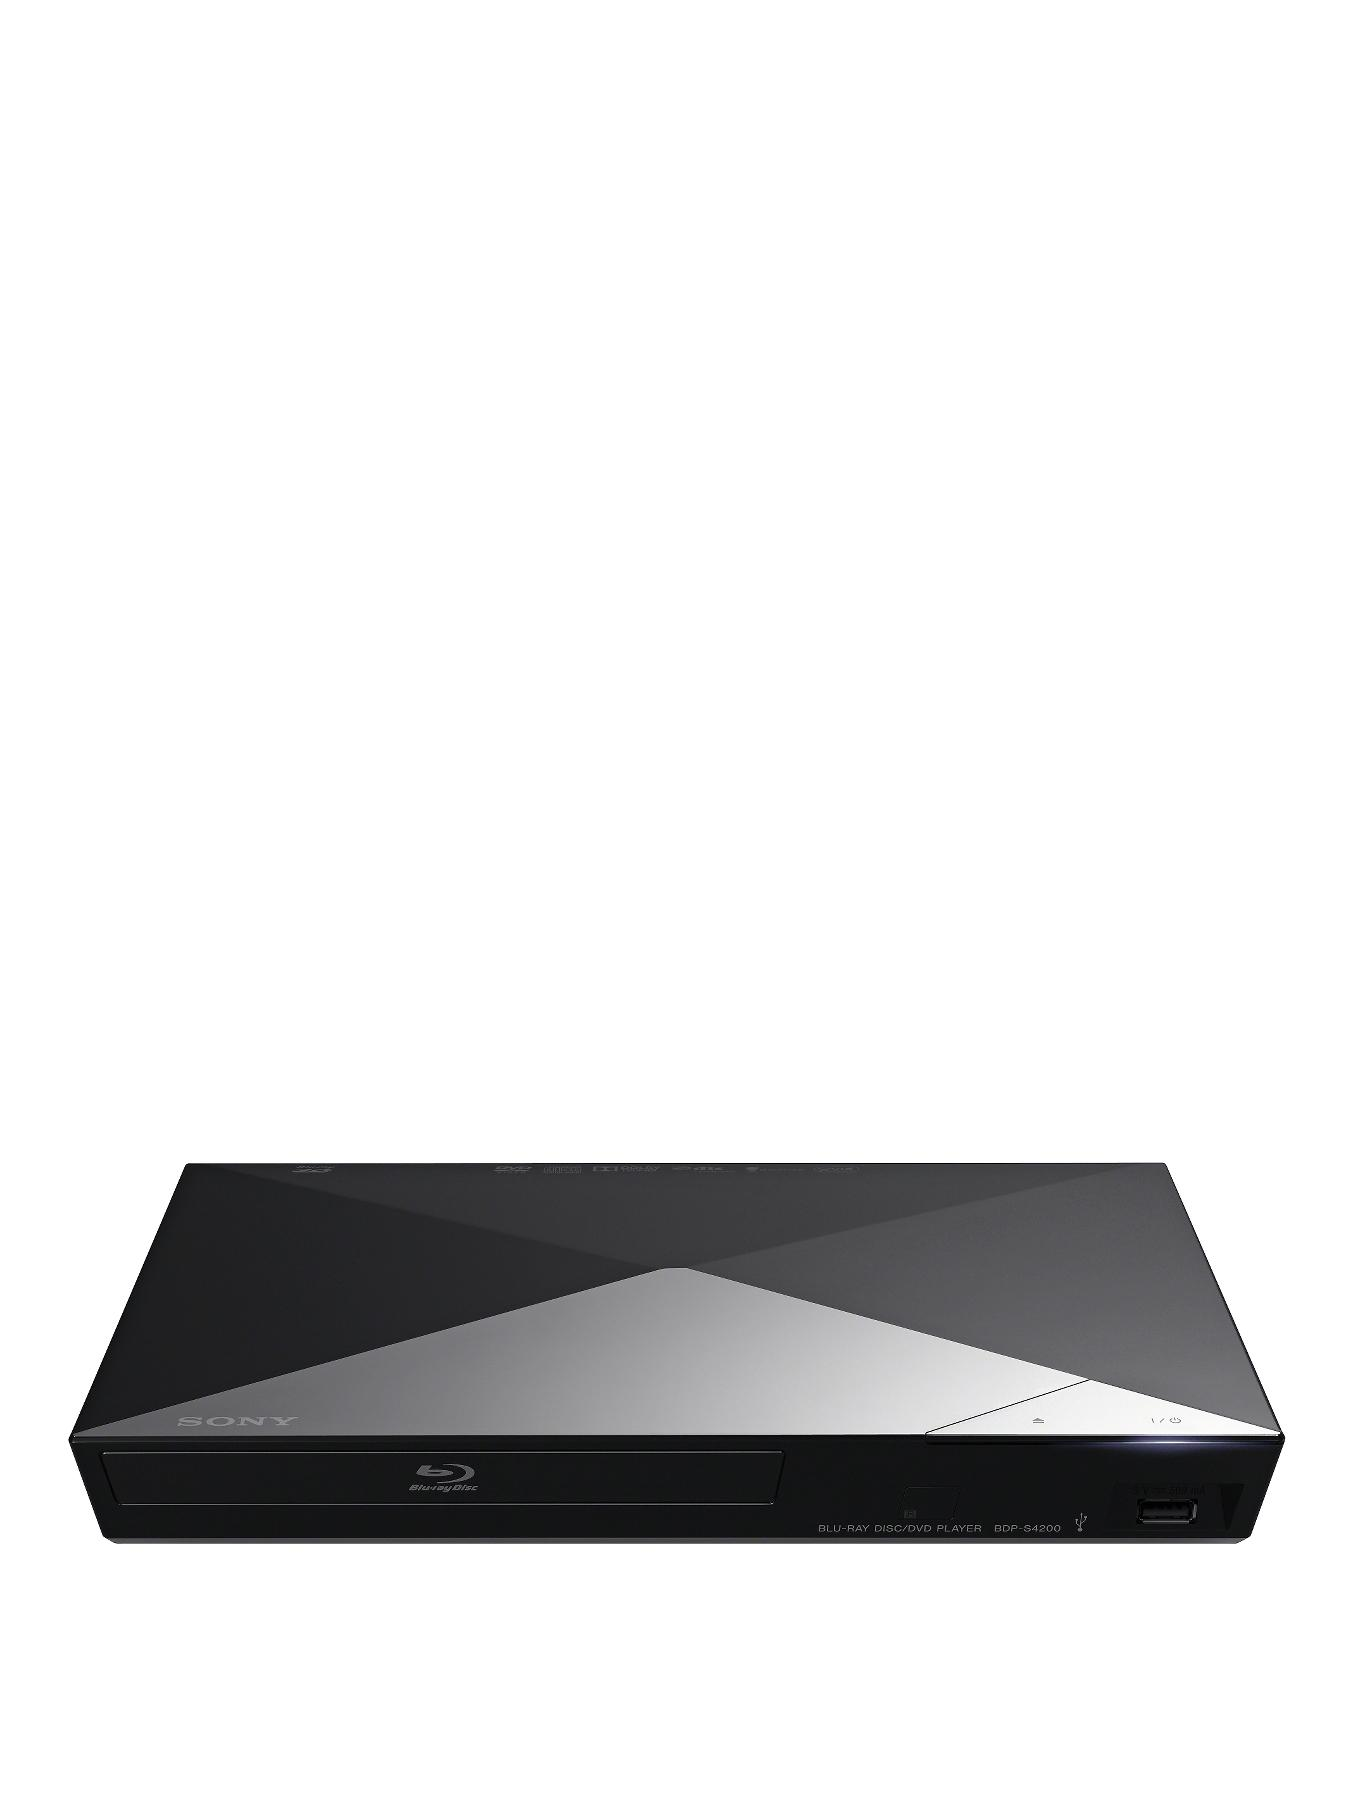 Sony BDP-S5200 Smart Wi-Fi 3D Blu-ray Player